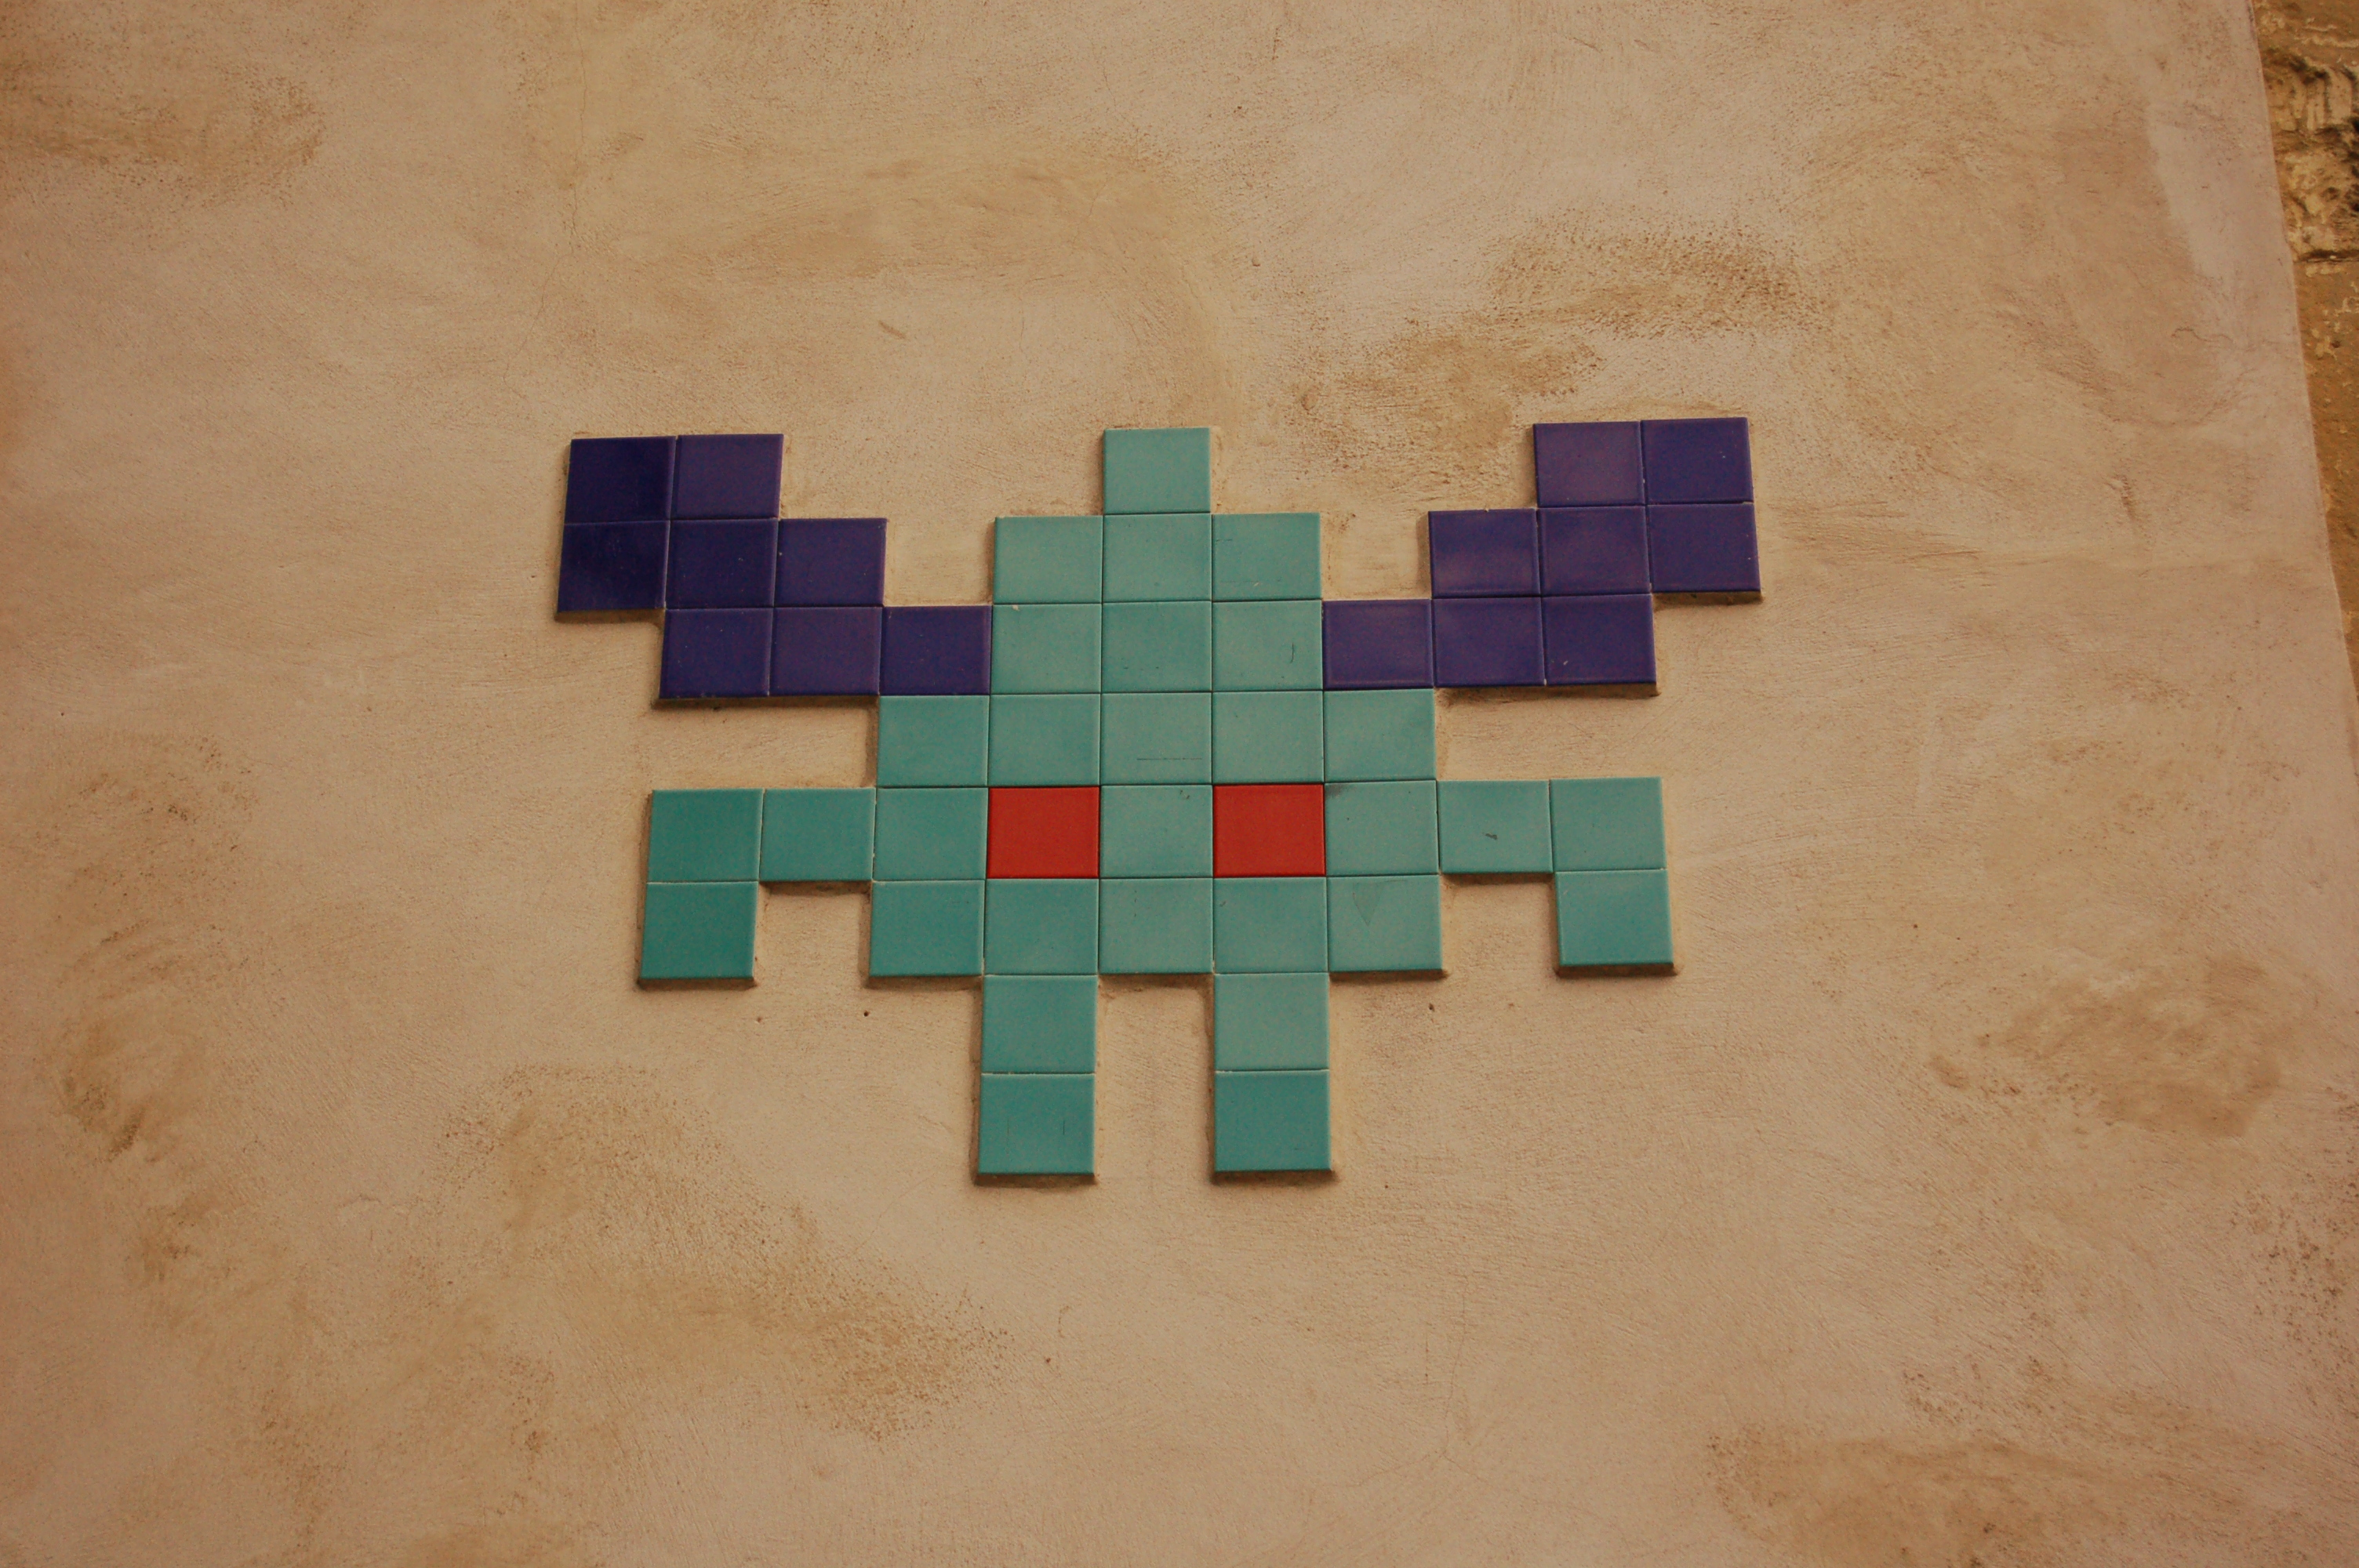 Invader uses iconic characters from video games in mosaic form